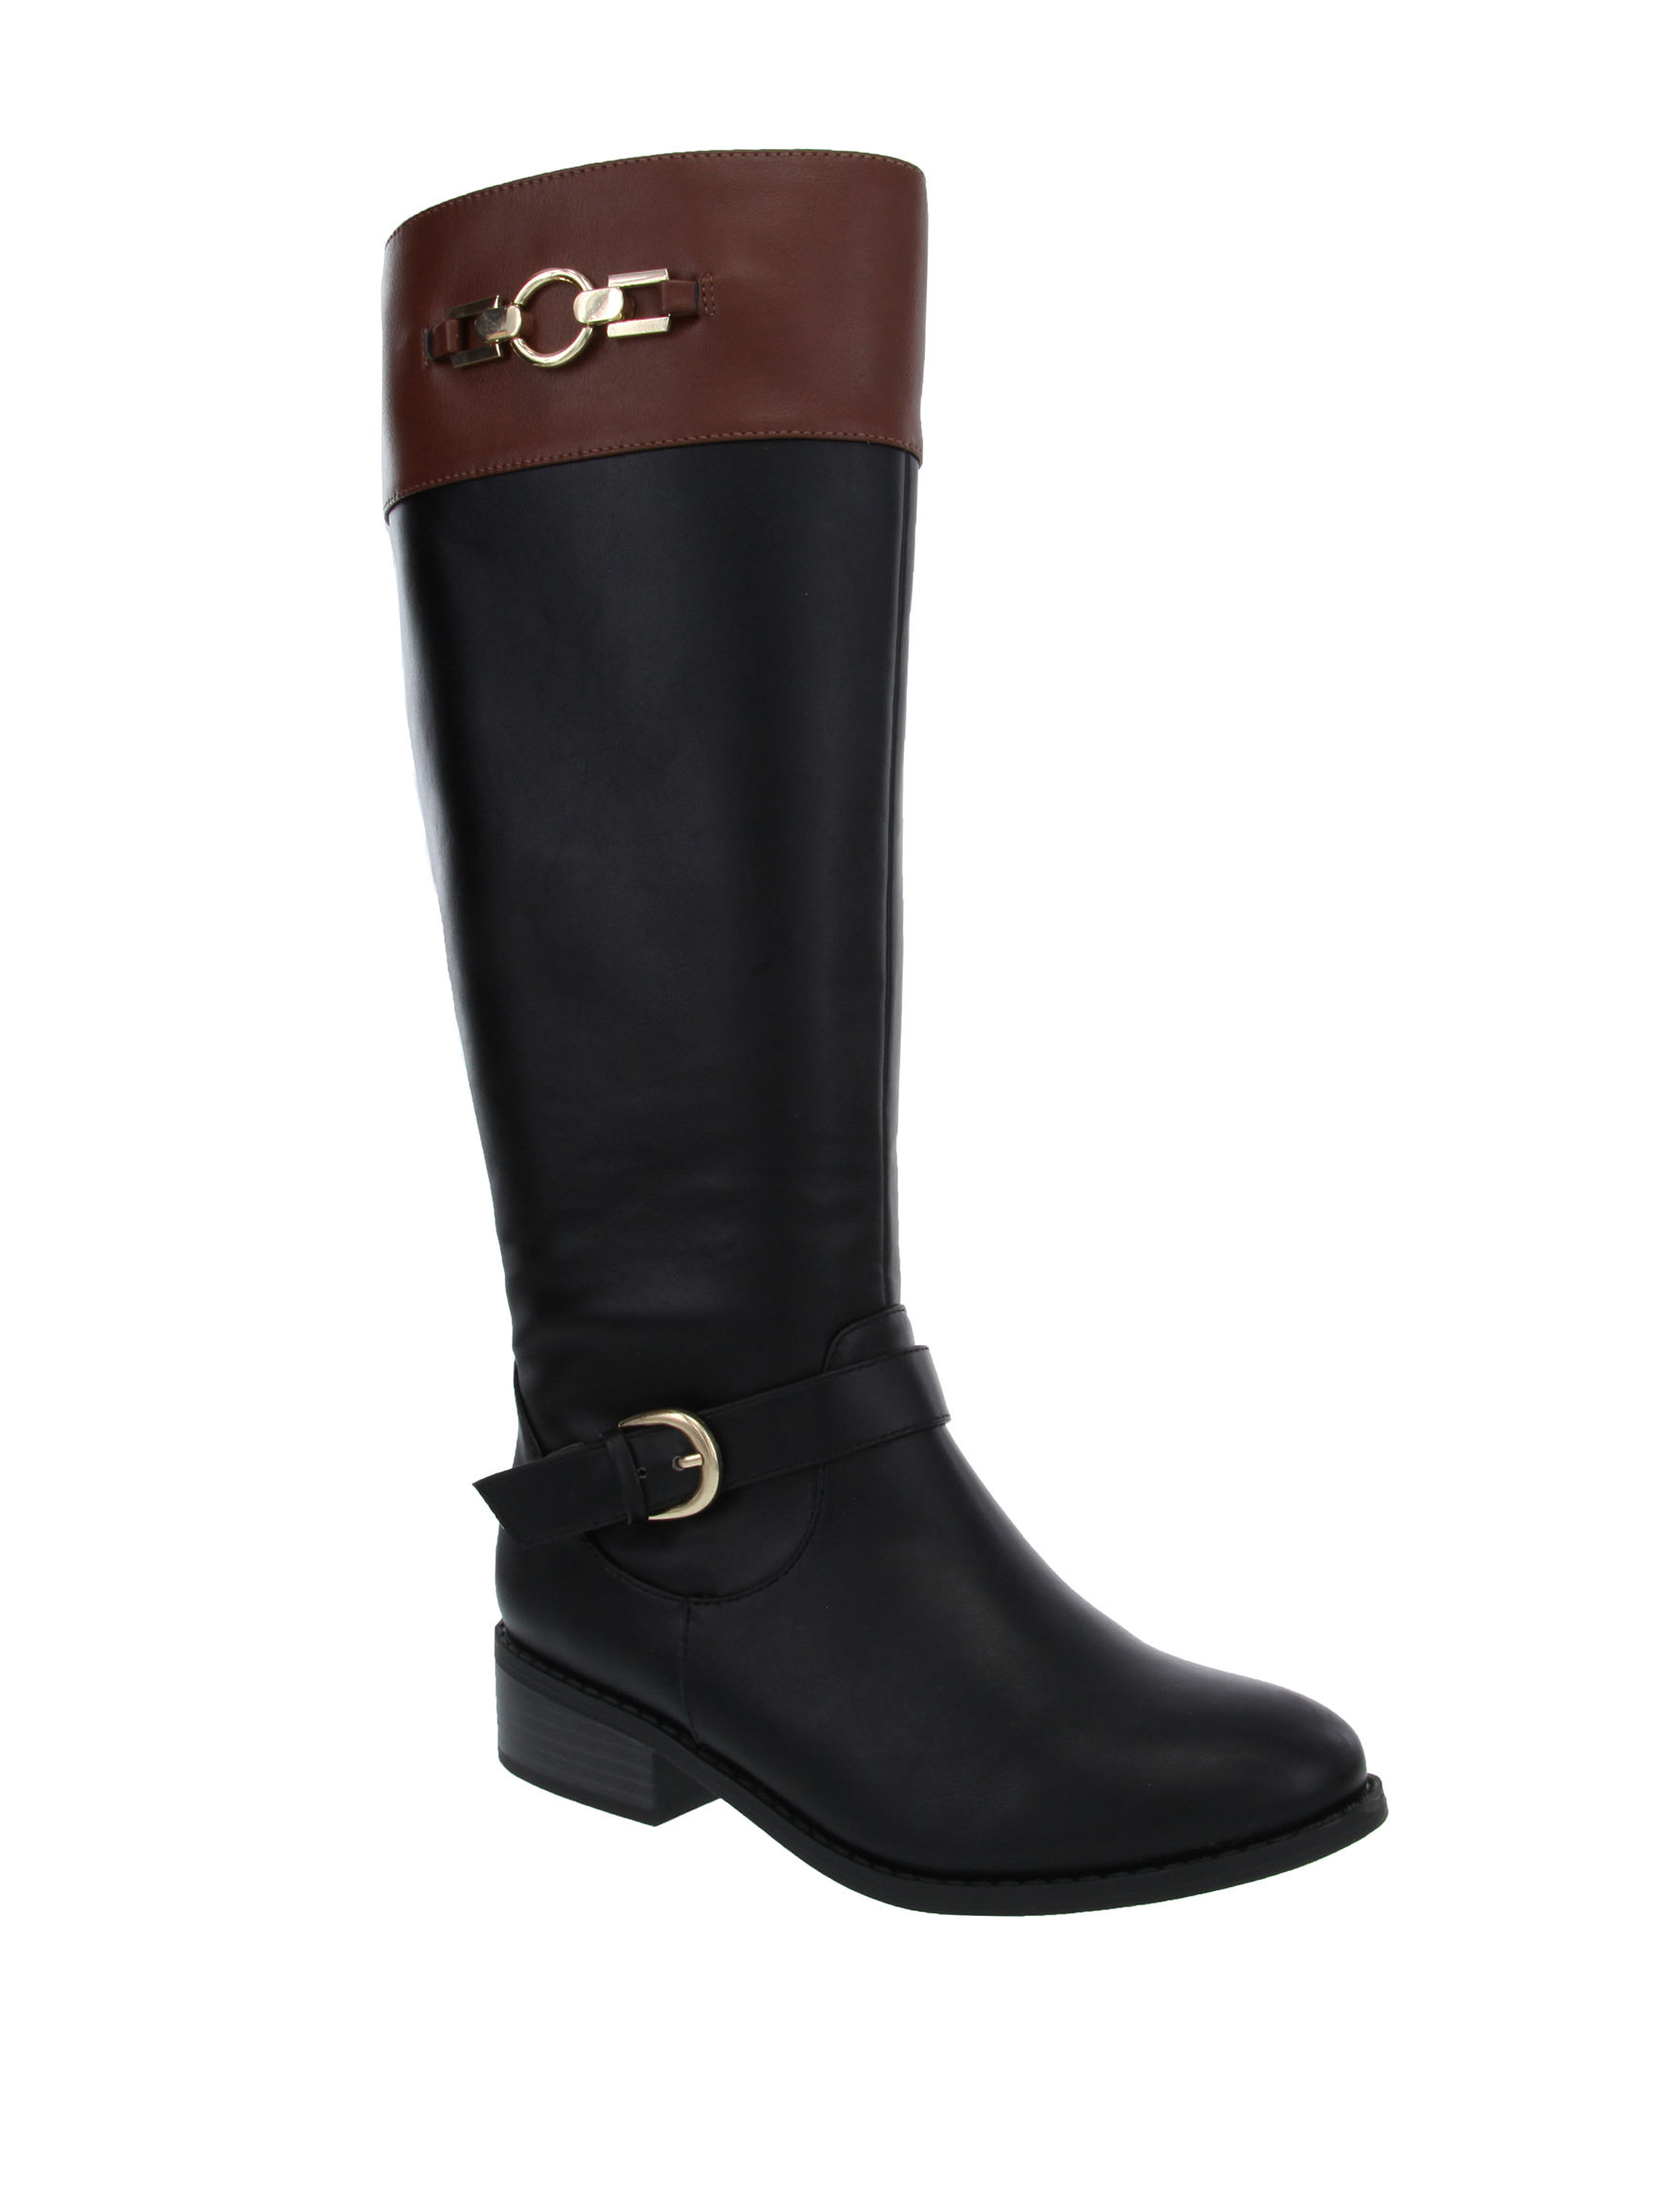 London Fog Black Riding Boots Wide Calf